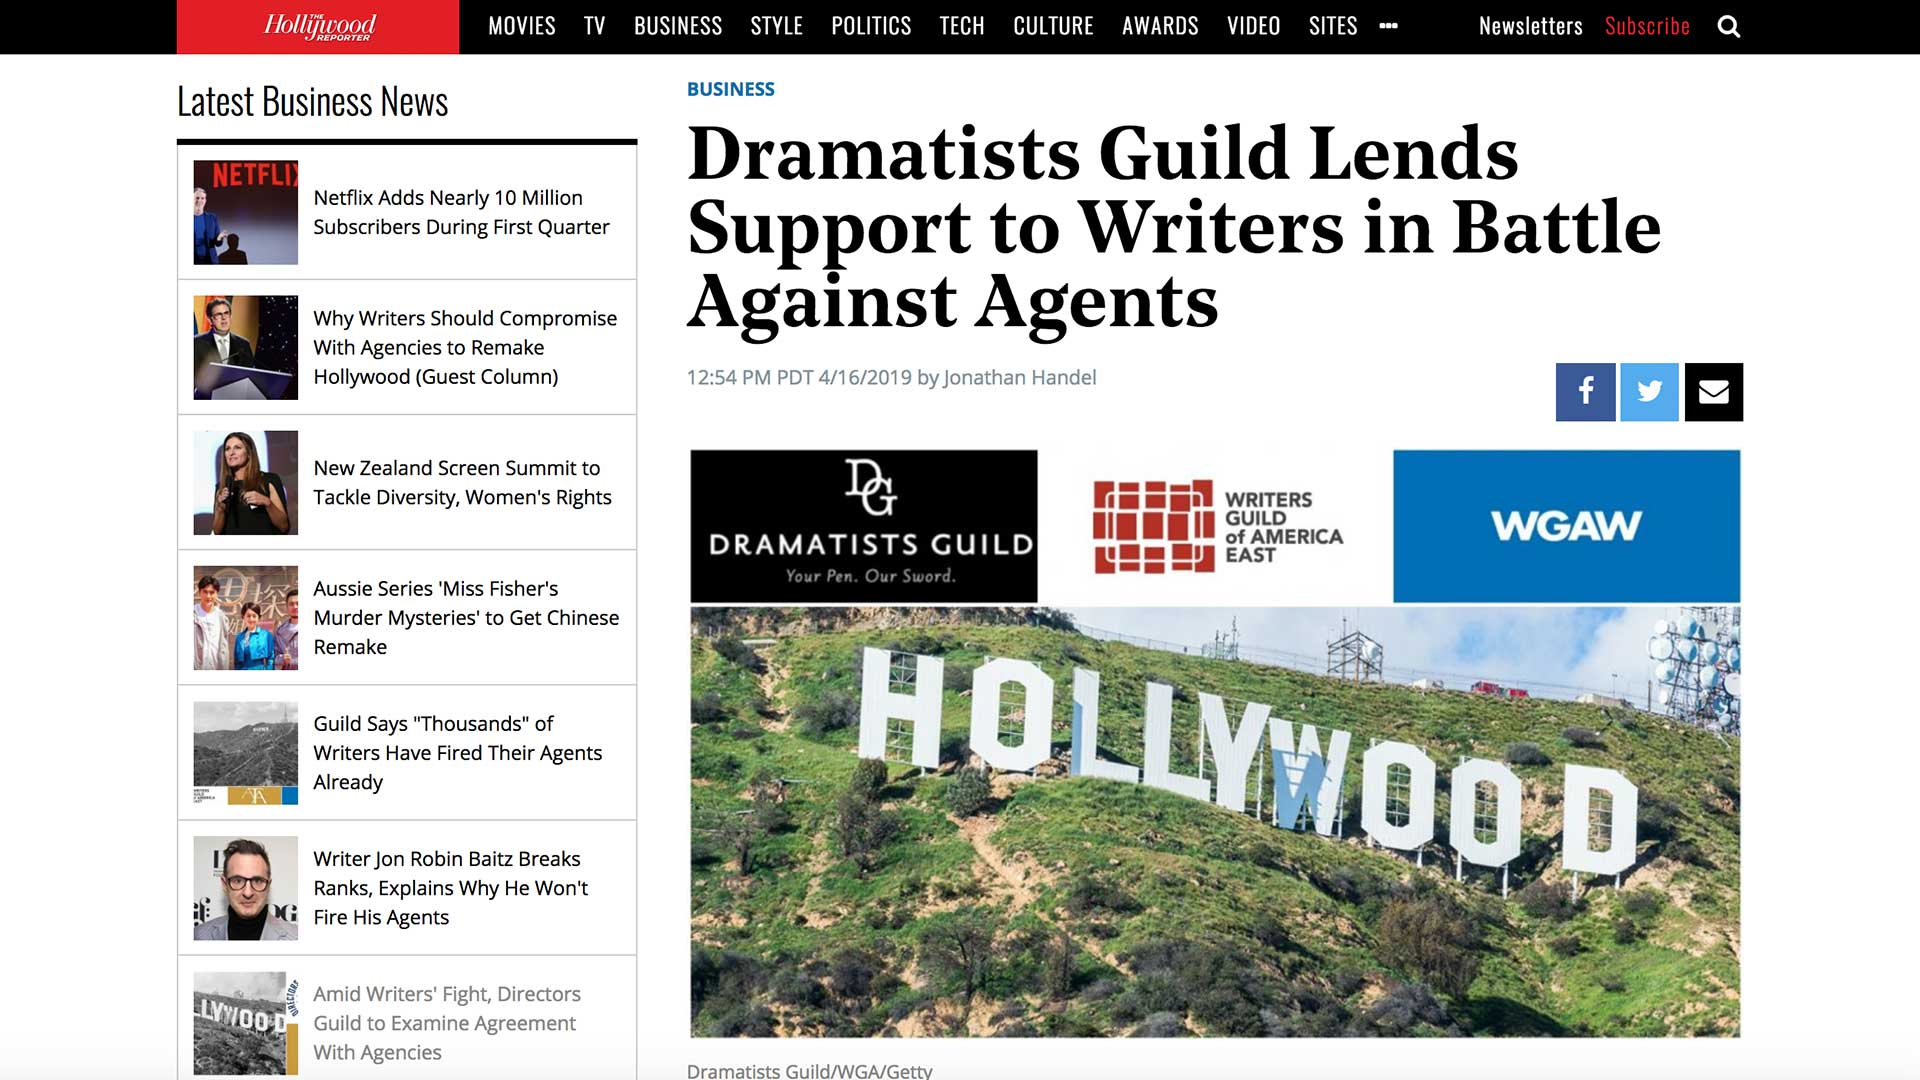 Fairness Rocks News Dramatists Guild Lends Support to Writers in Battle Against Agents